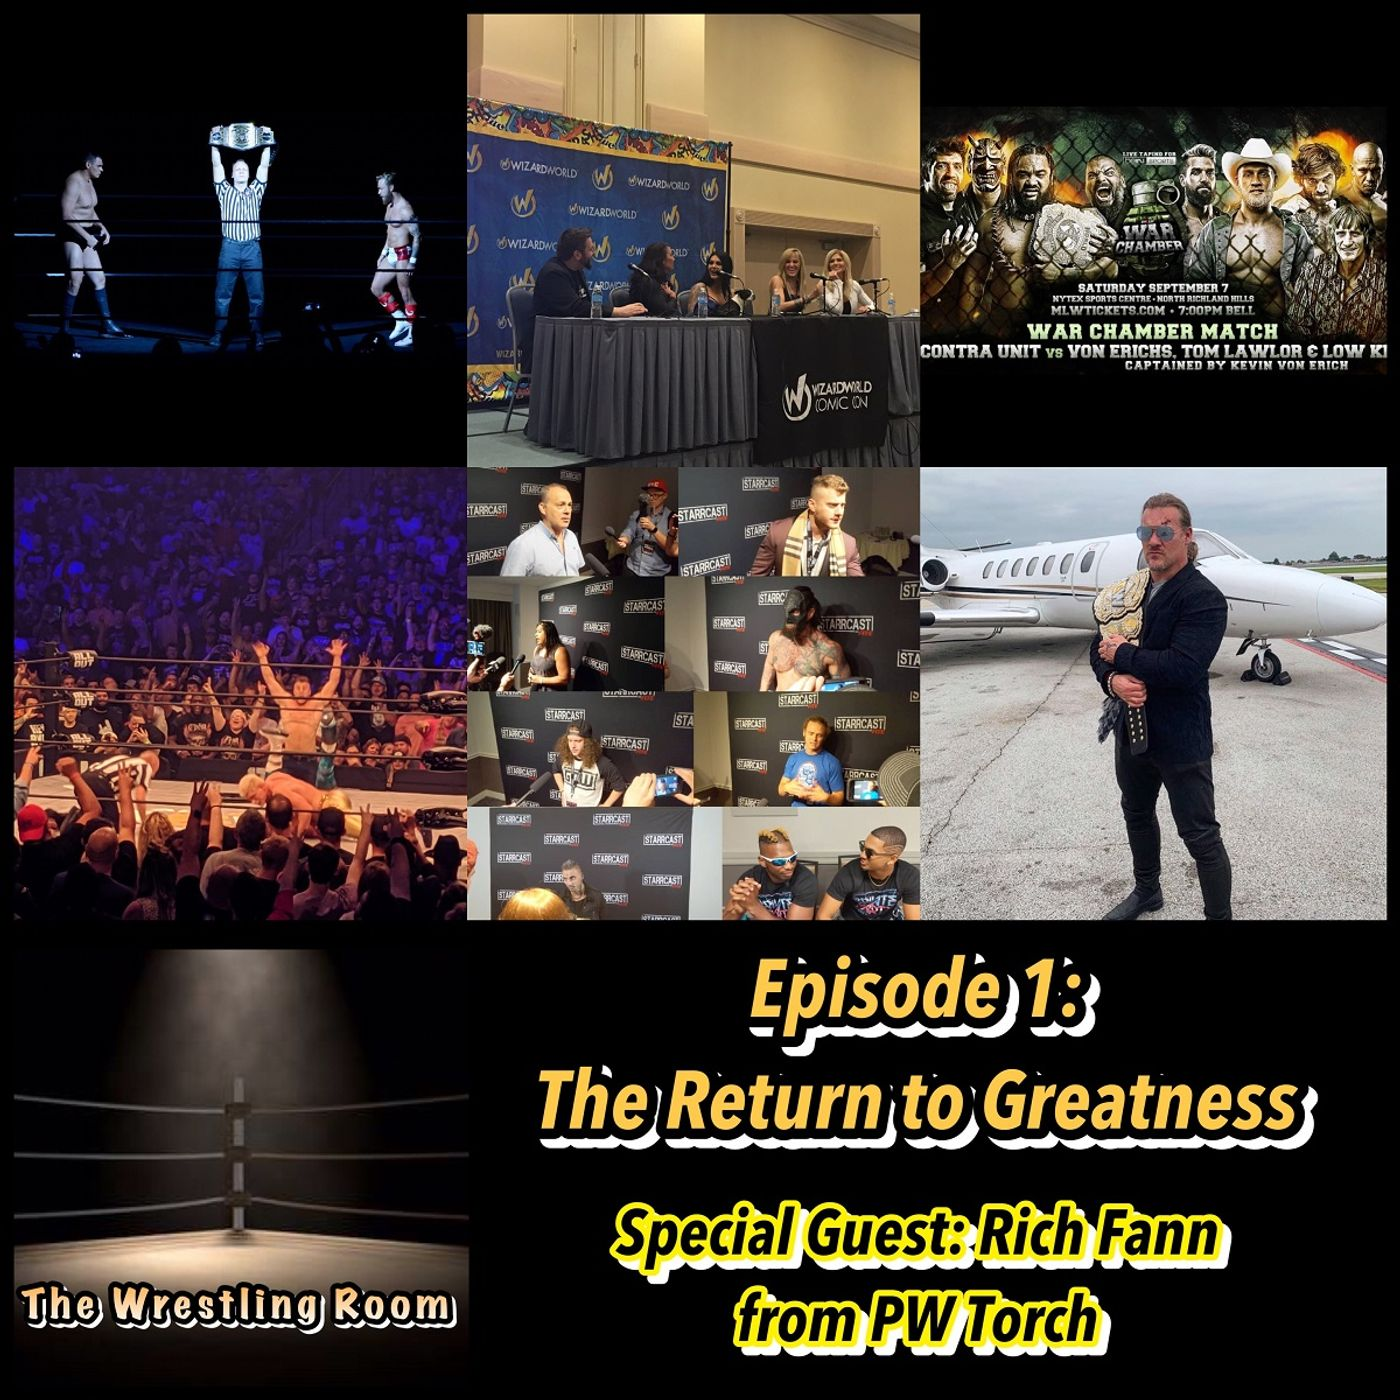 Wrestling Room Episode 1: The Return To Greatness (Special Guest: Rich Fann)